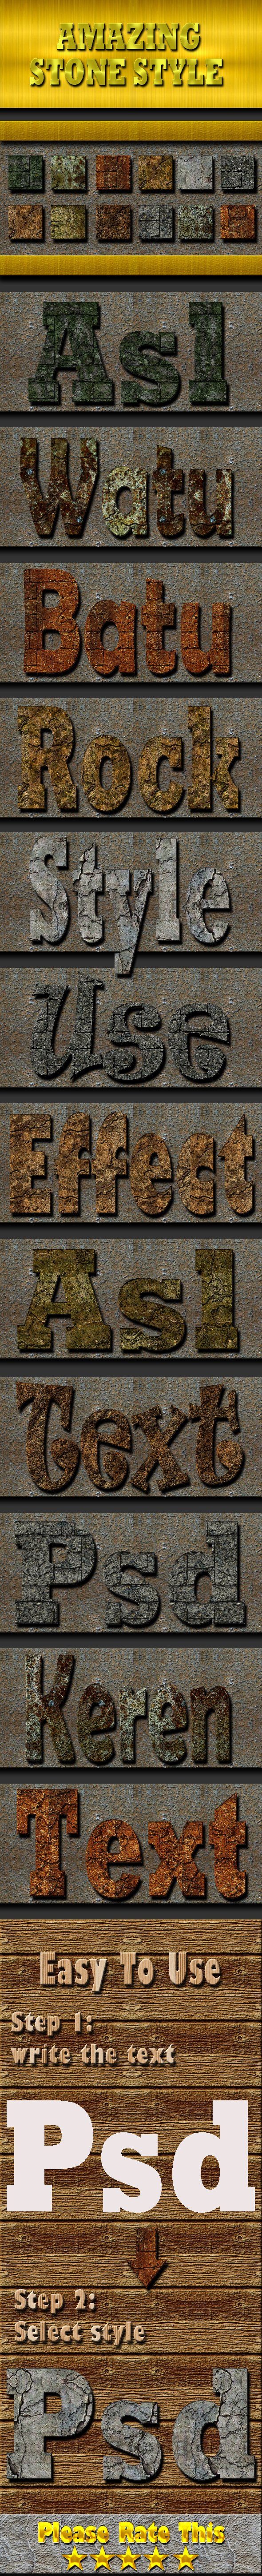 Stone Text Effect Style - Text Effects Styles